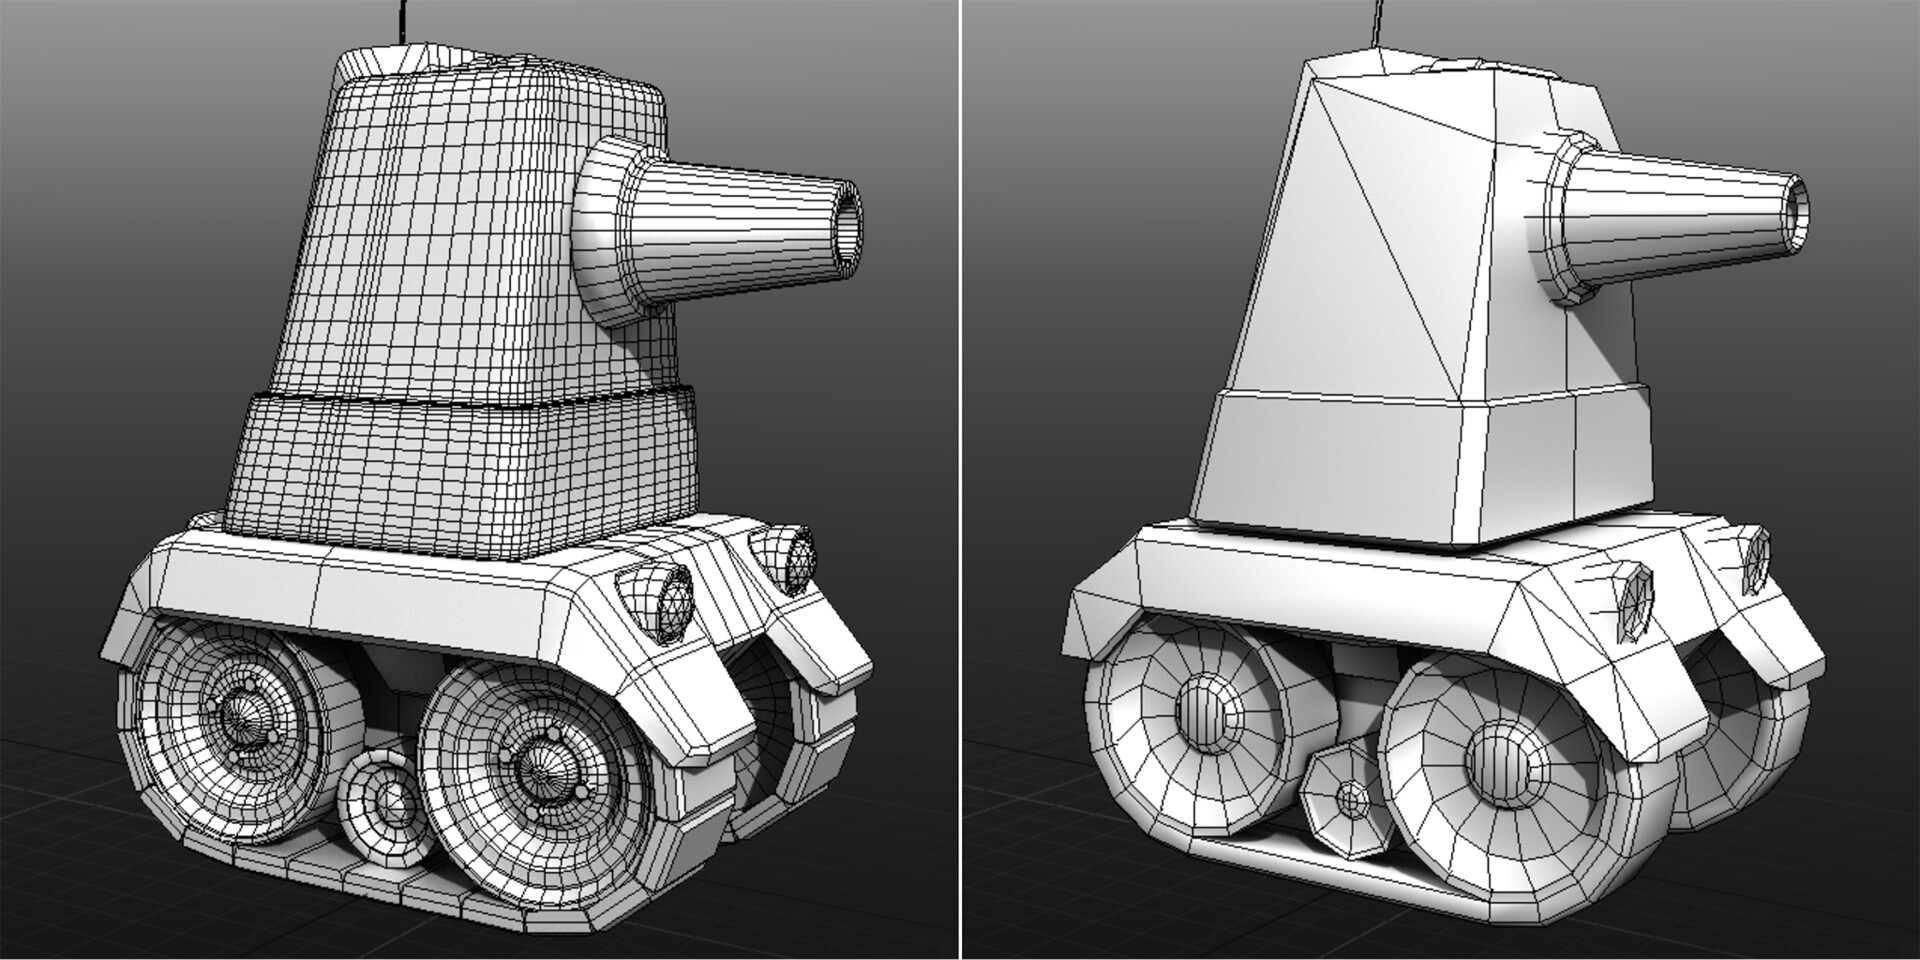 The original model for the tank was nearly 50,000 tris when it was given to me. I reduced it to fewer than 3,000.